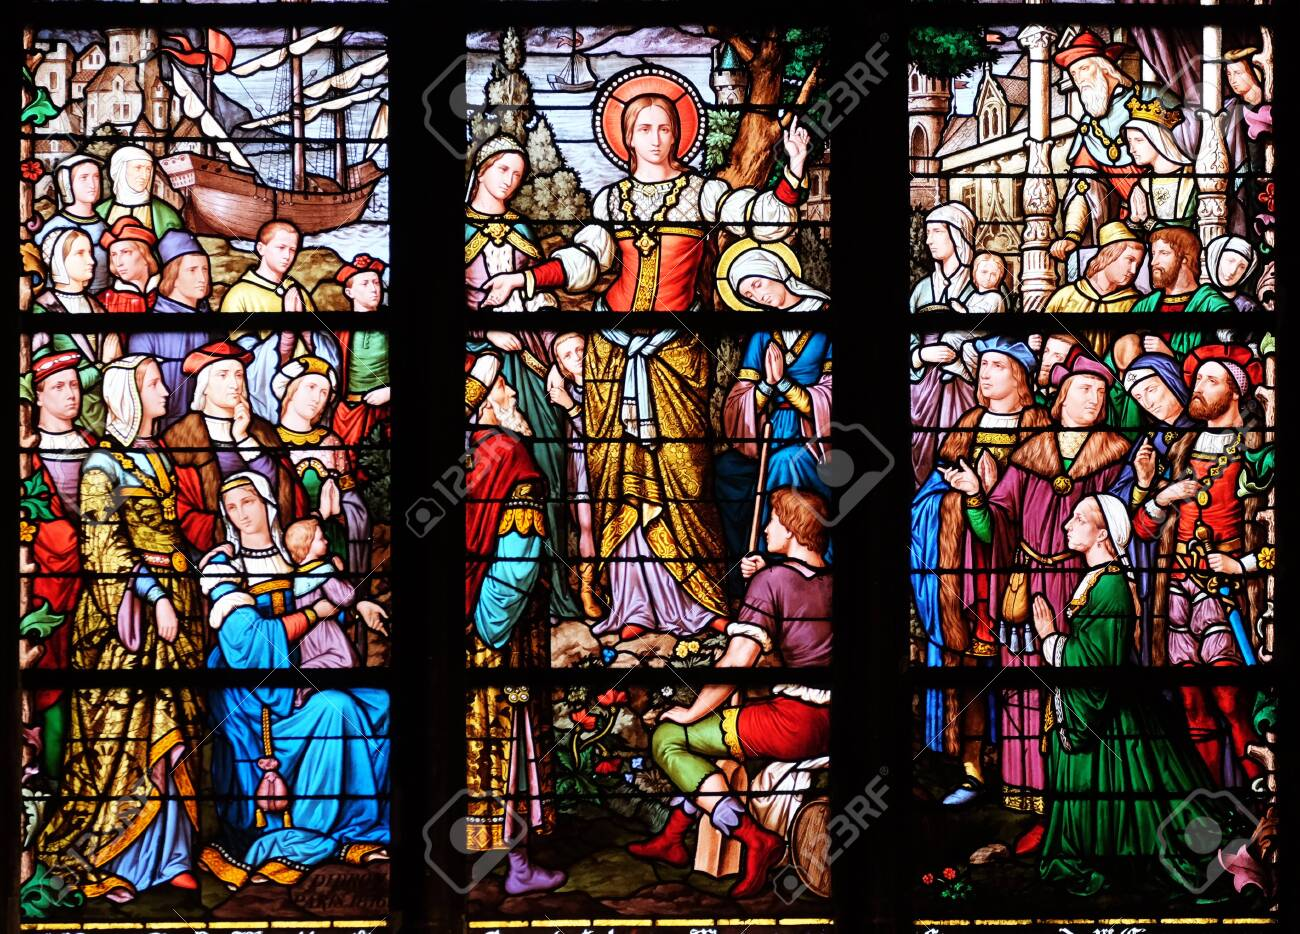 Apostolate of St. Mary Magdalene, stained glass window in Saint Severin church in Paris, France - 137074590